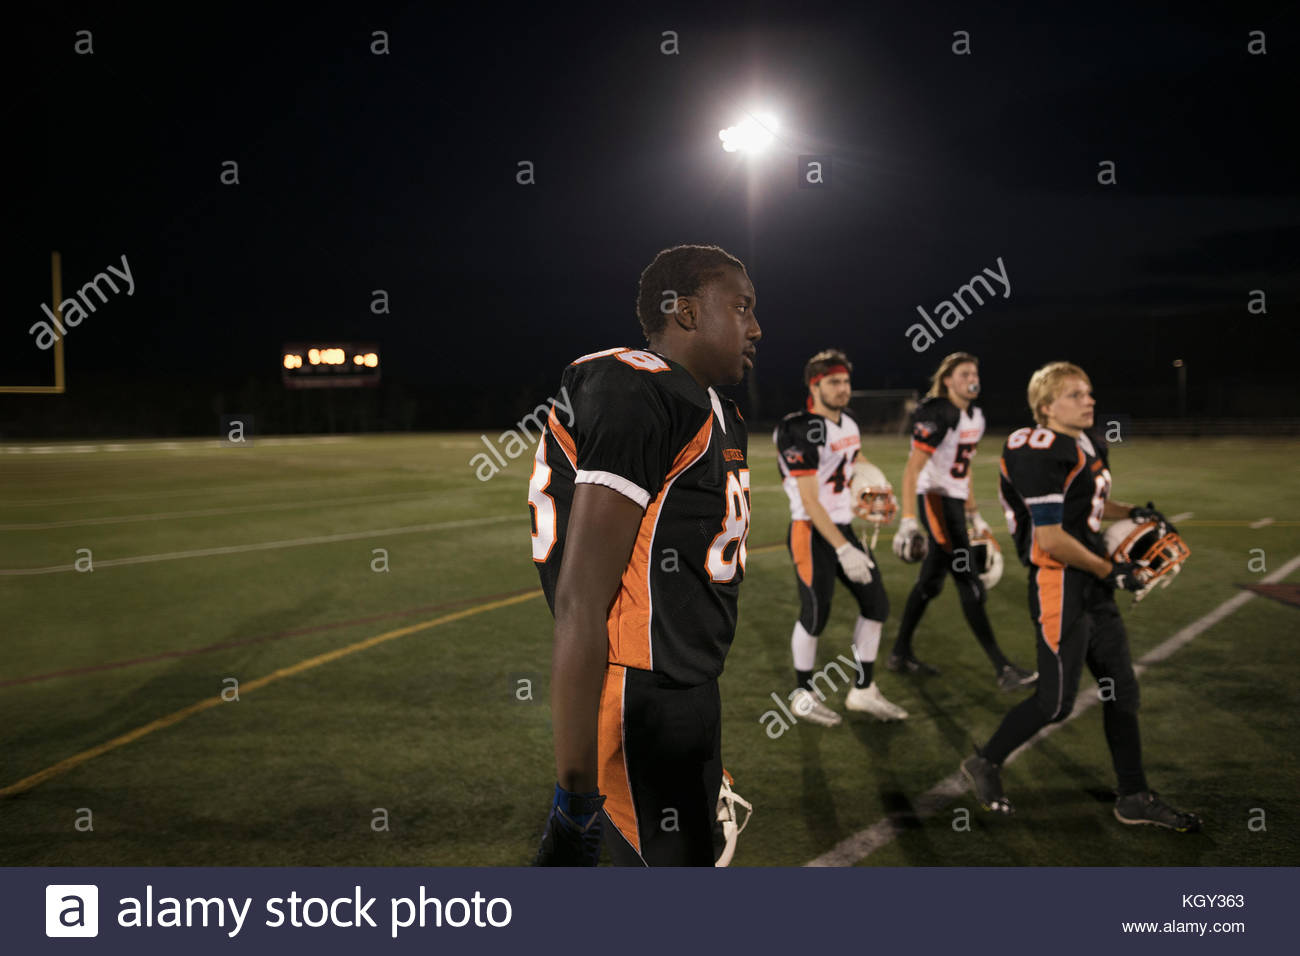 High school football field photography